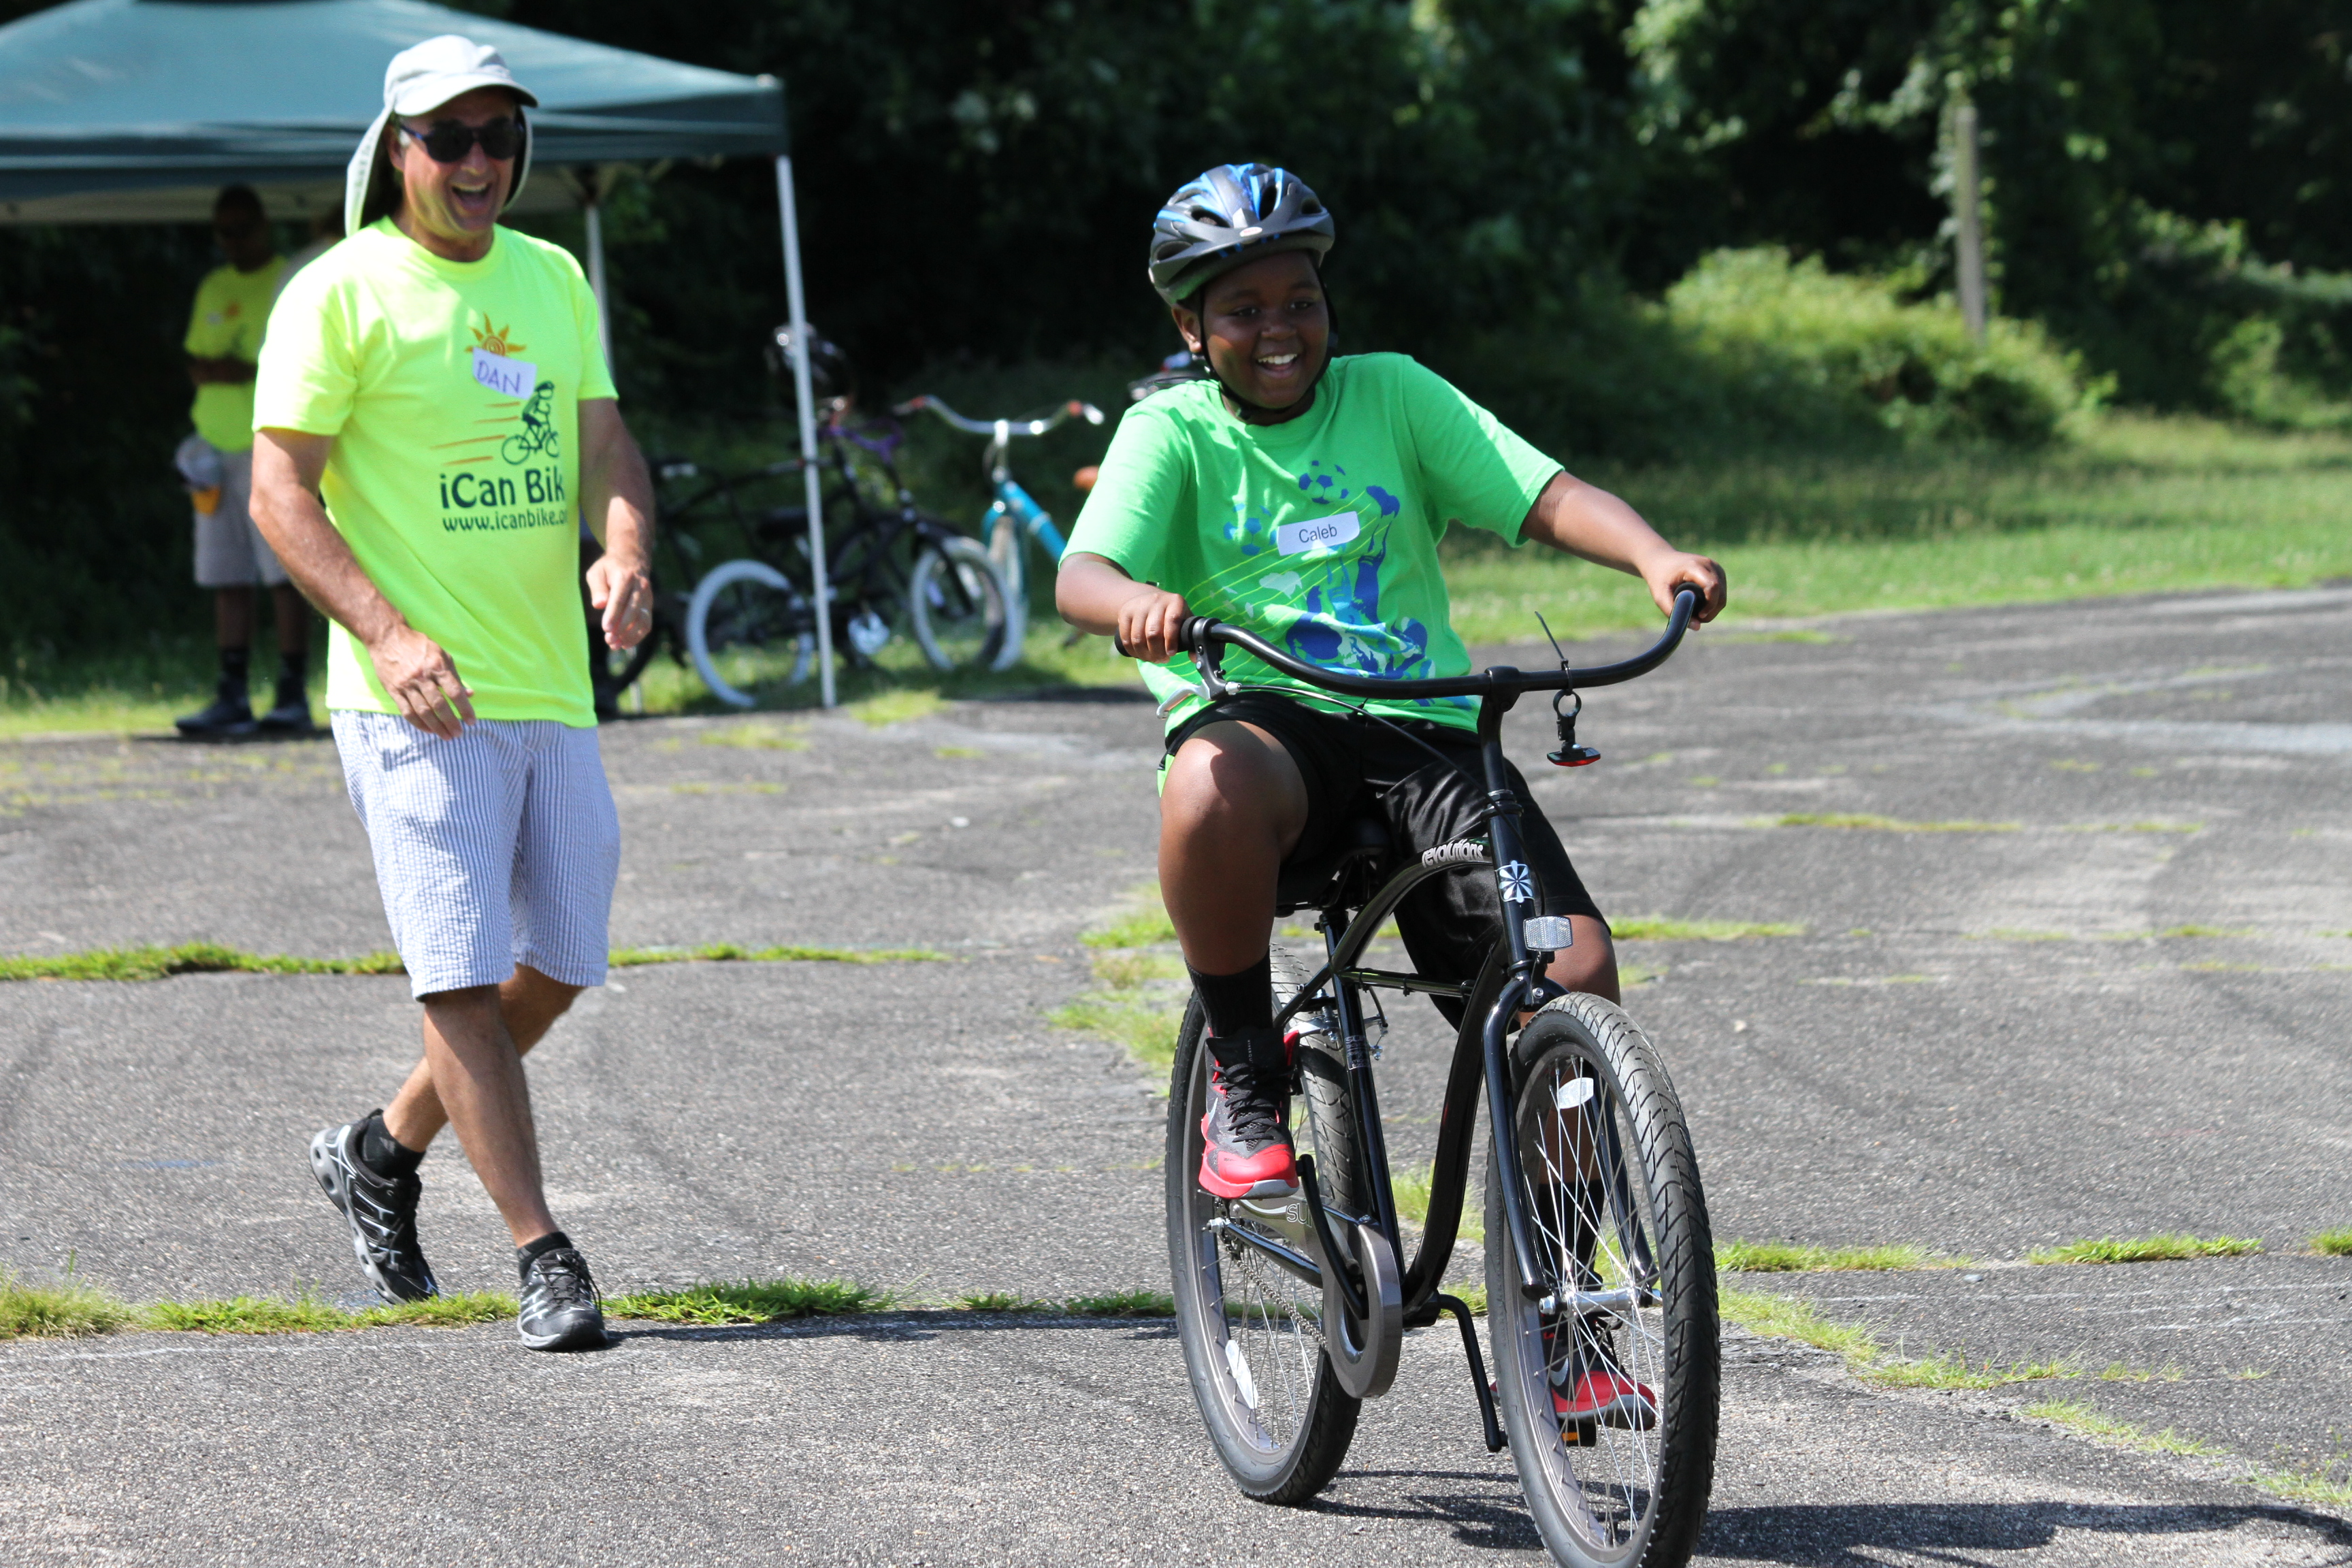 content-ican-bike-safe-routes